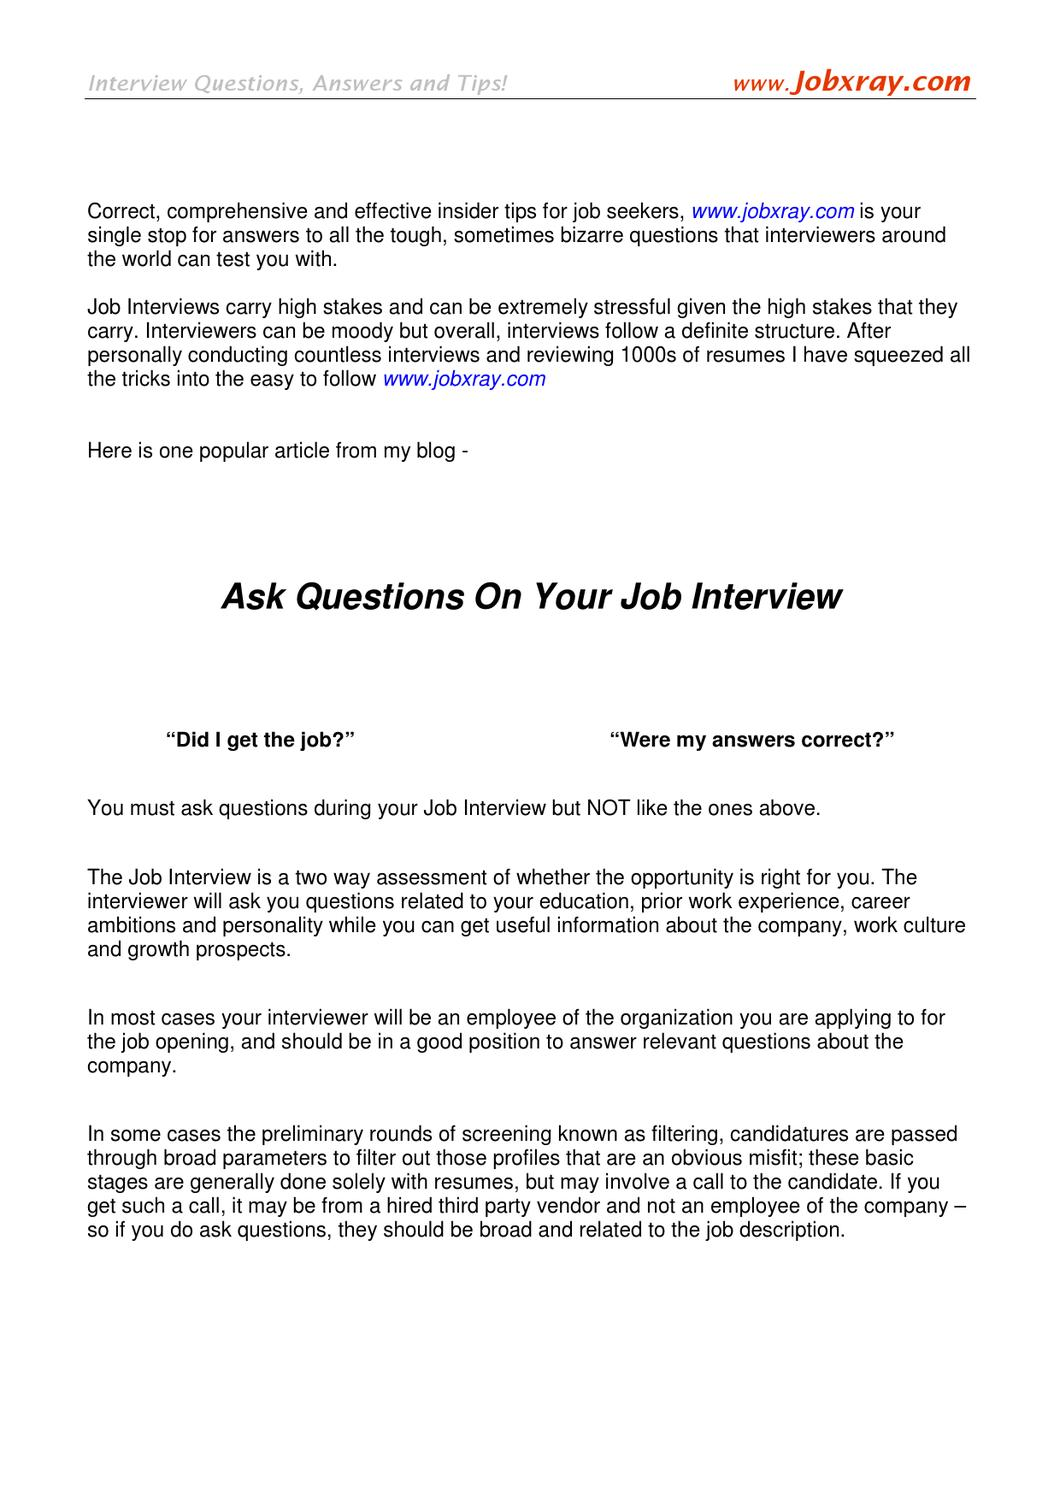 Ask Questions In Your Job Interview (from Www.jobxray.com) By Jobxray  Jobxray   Issuu